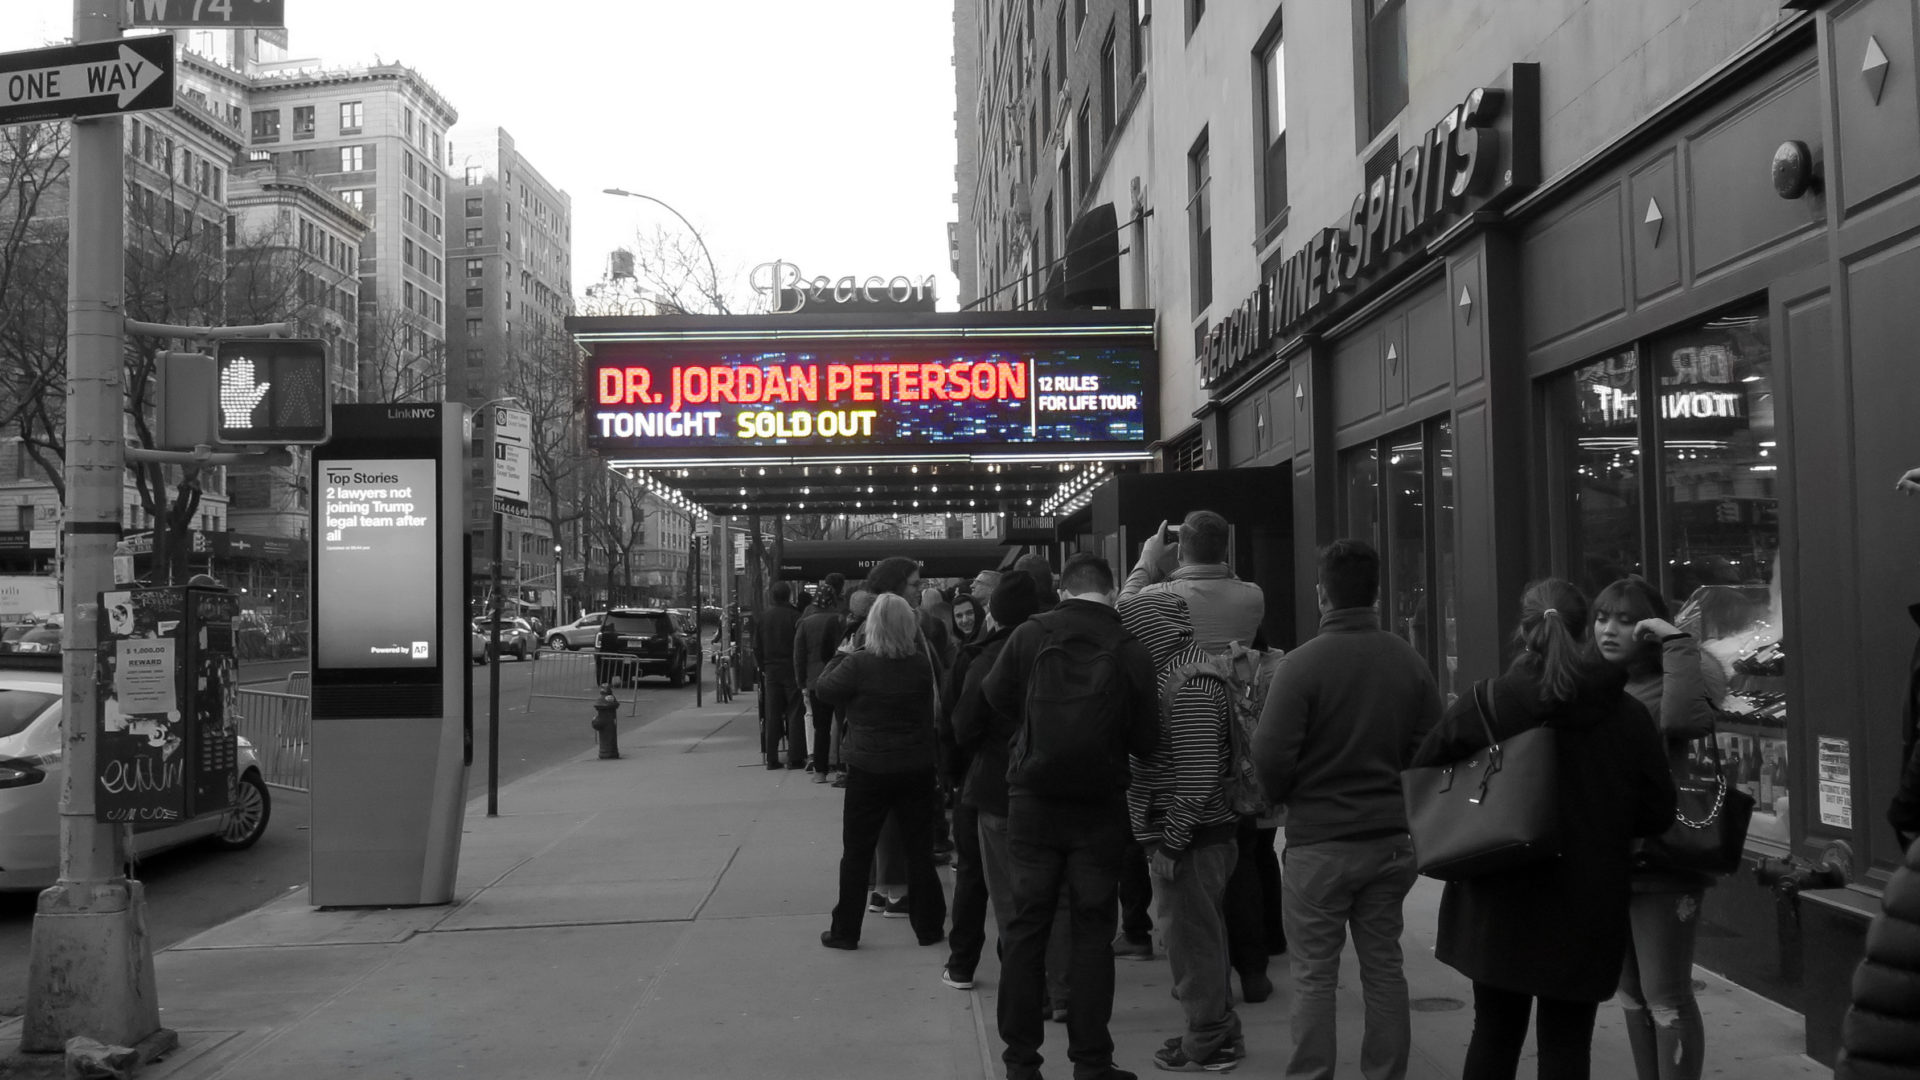 Jordan Peterson sold out at the Beacon Theater